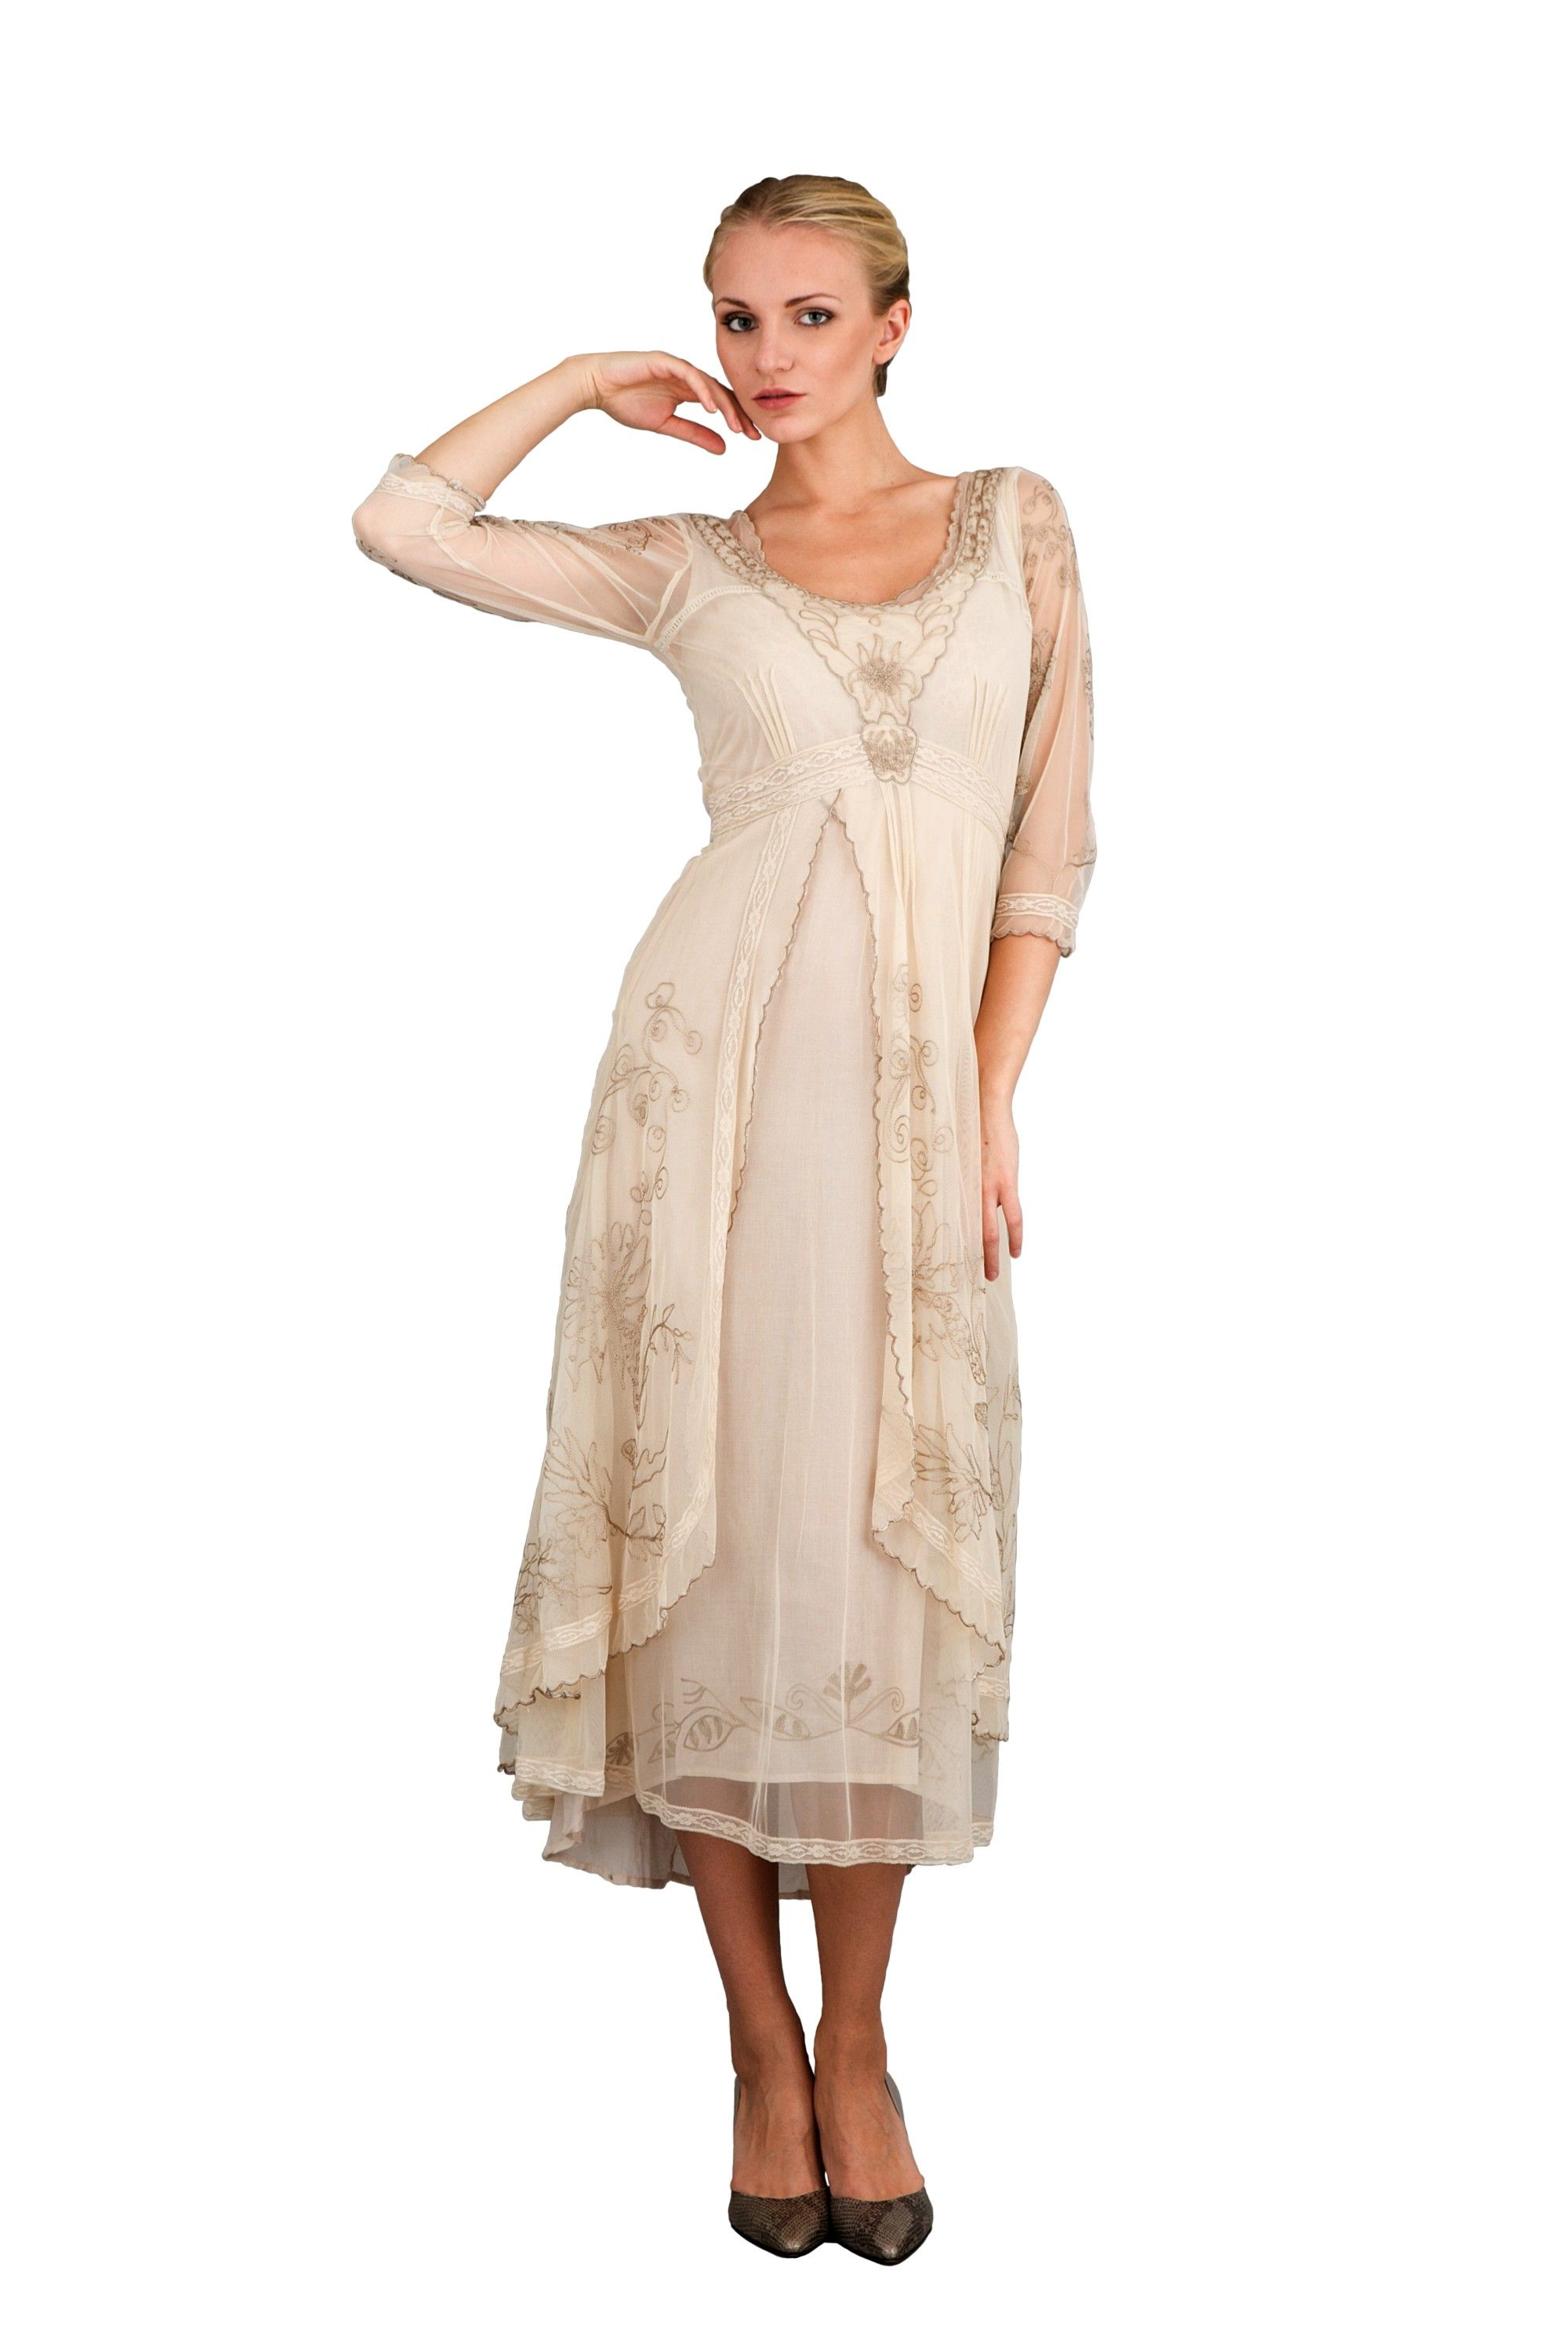 1920s Day Dresses, Tea Dresses, Mature Dresses with Sleeves | 20er